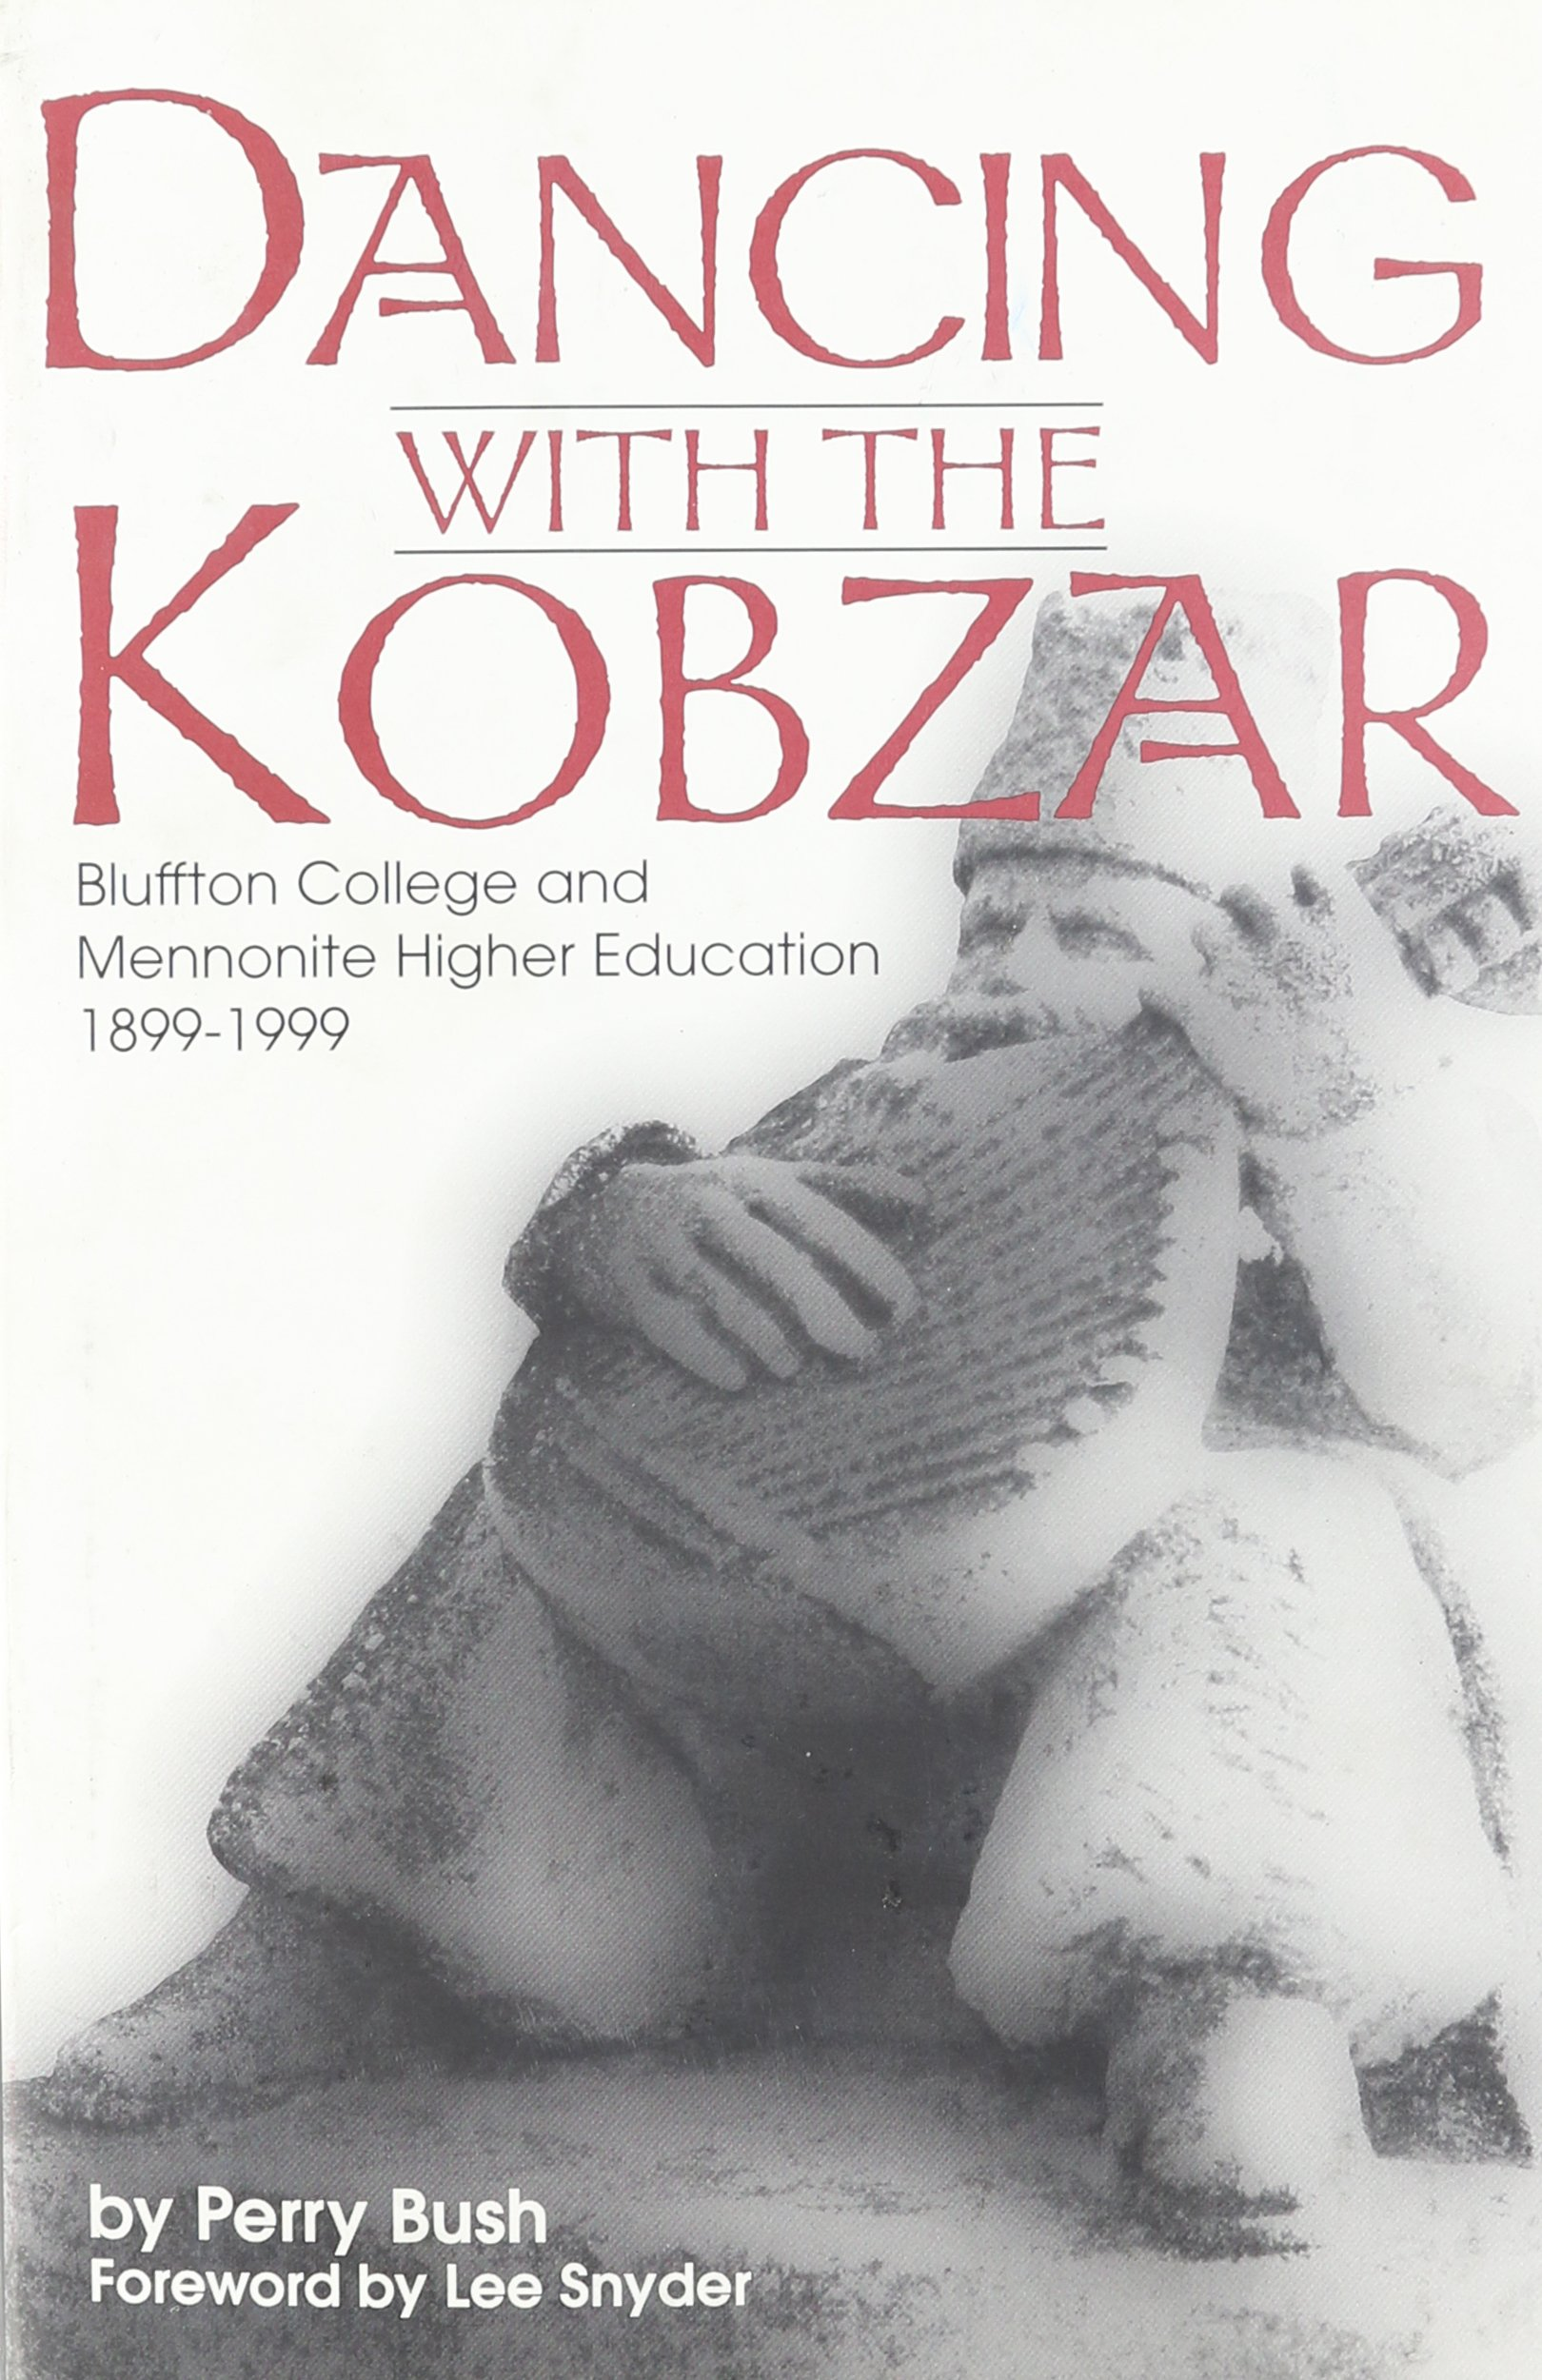 Dancing With the Kobzar: Bluffton College and